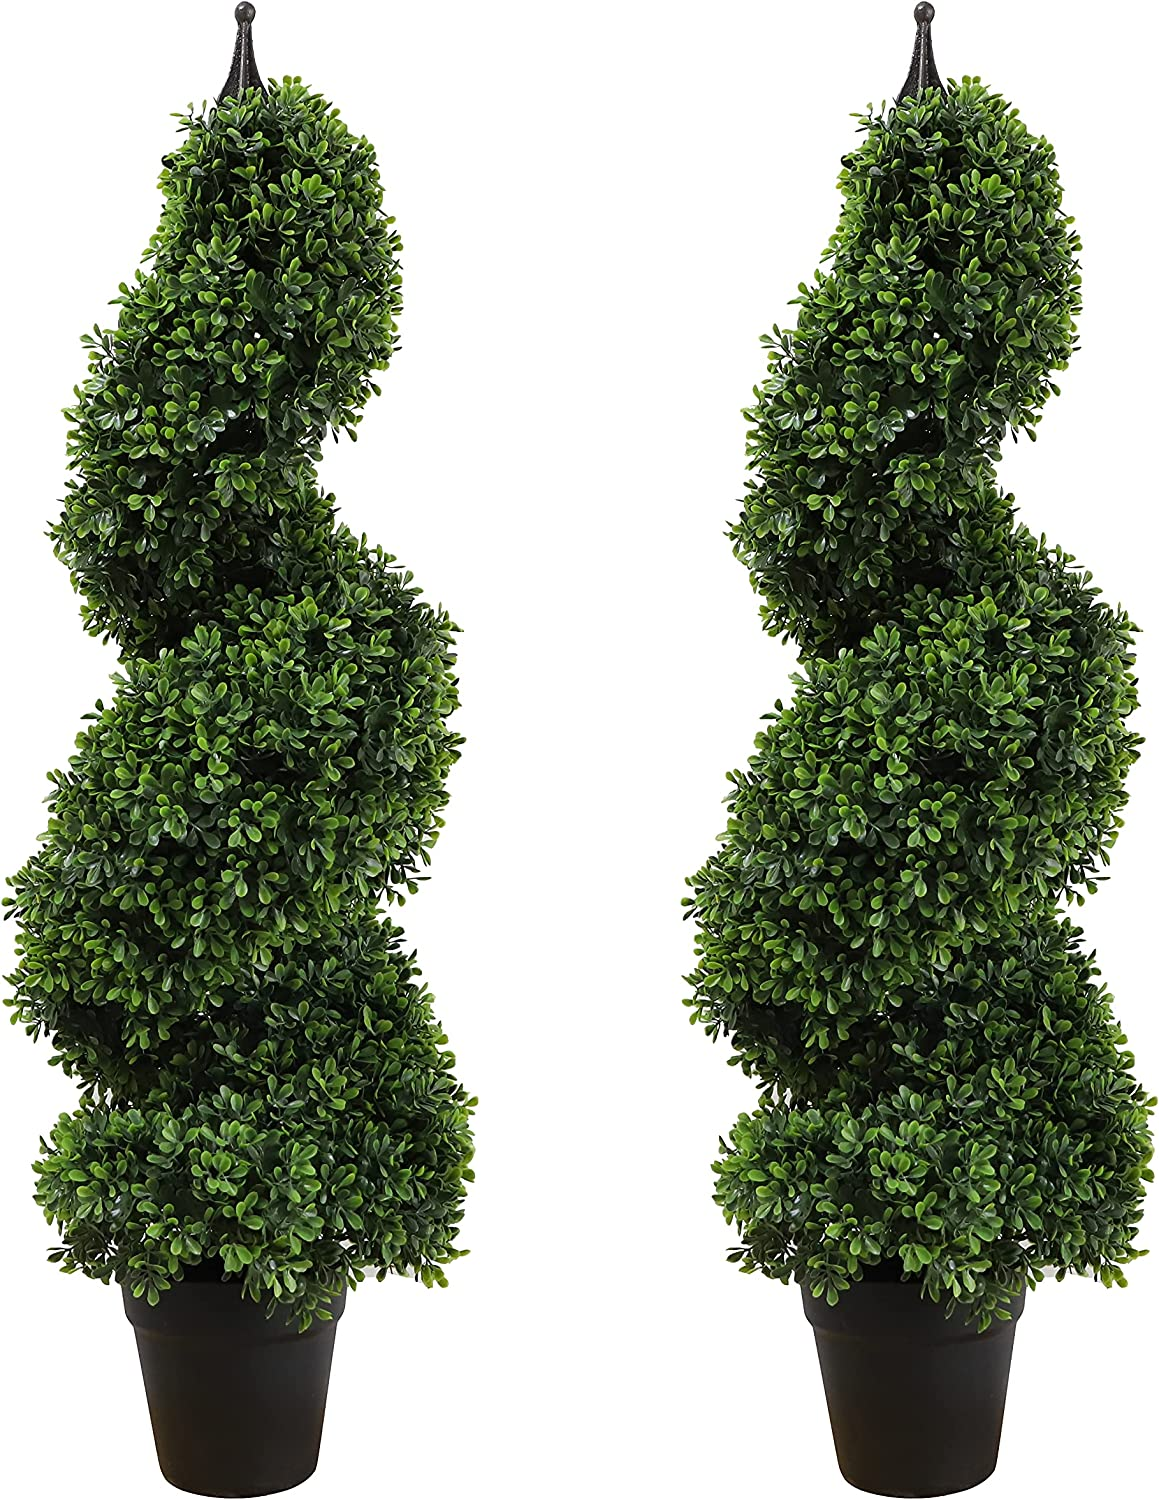 35 inch 2.95 ft Artificial Topiary Limited price sale Outdoor Boxwood Tree T Spiral Low price